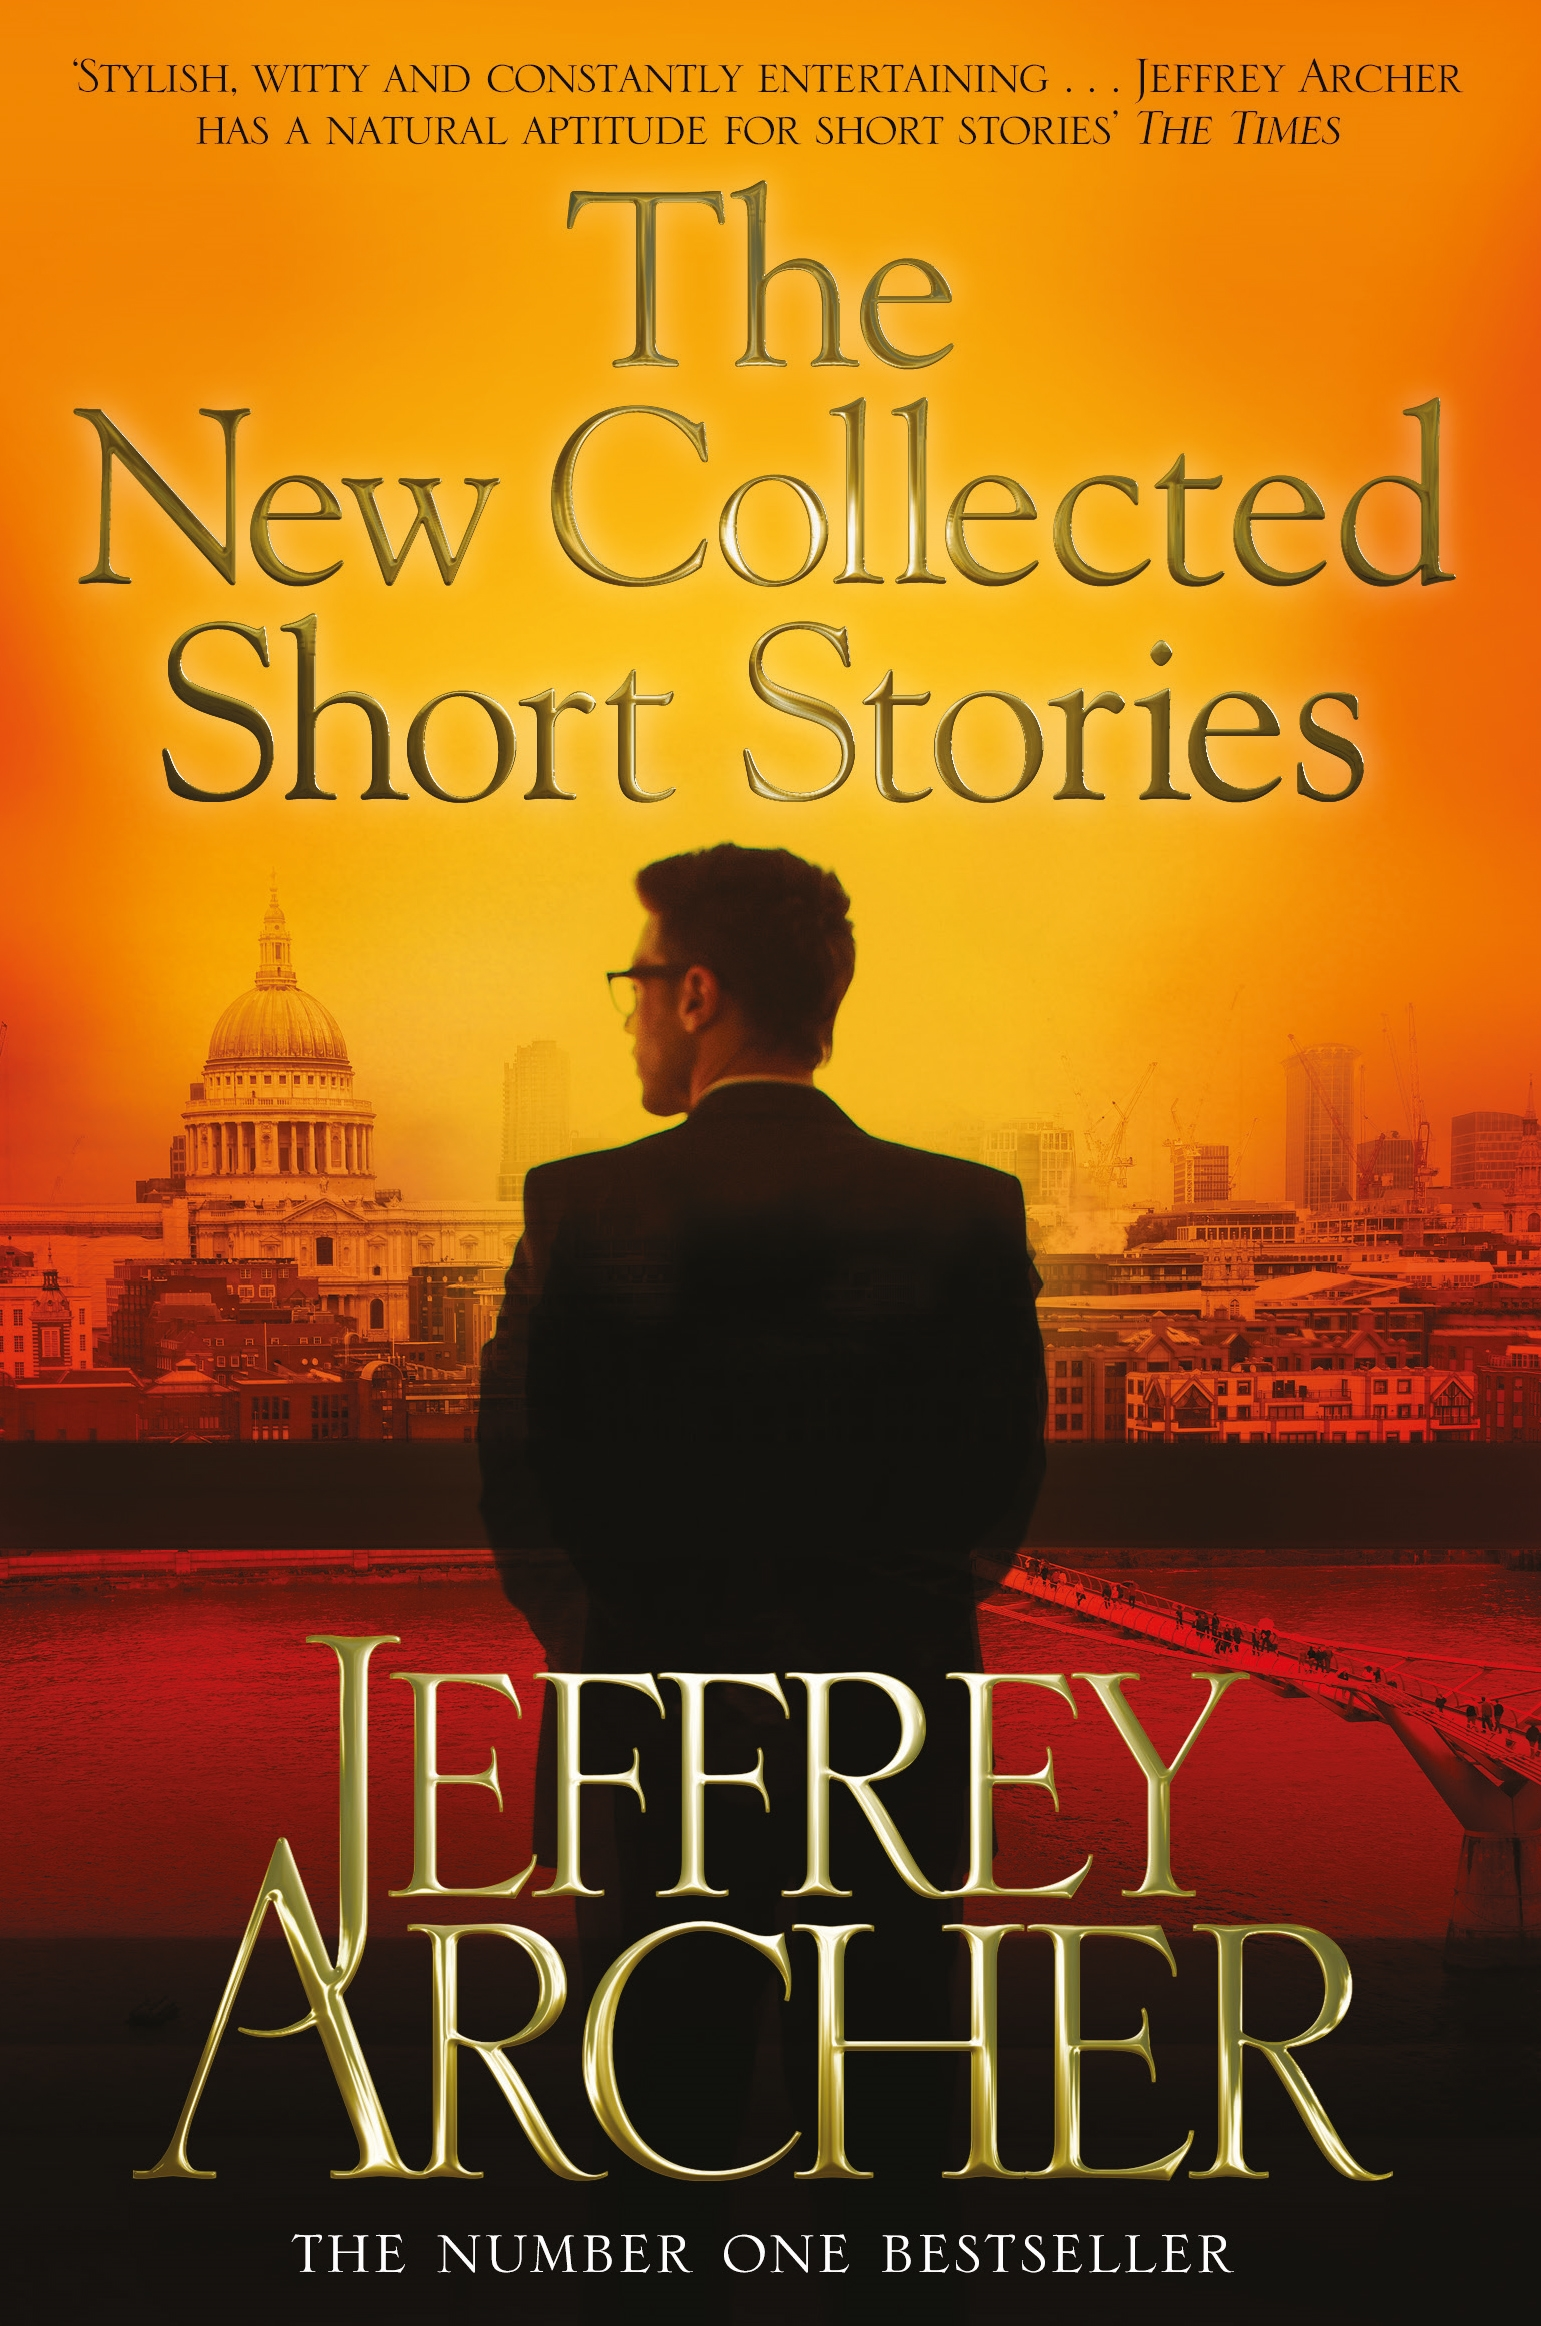 The New Collected Short Stories collected stories 1